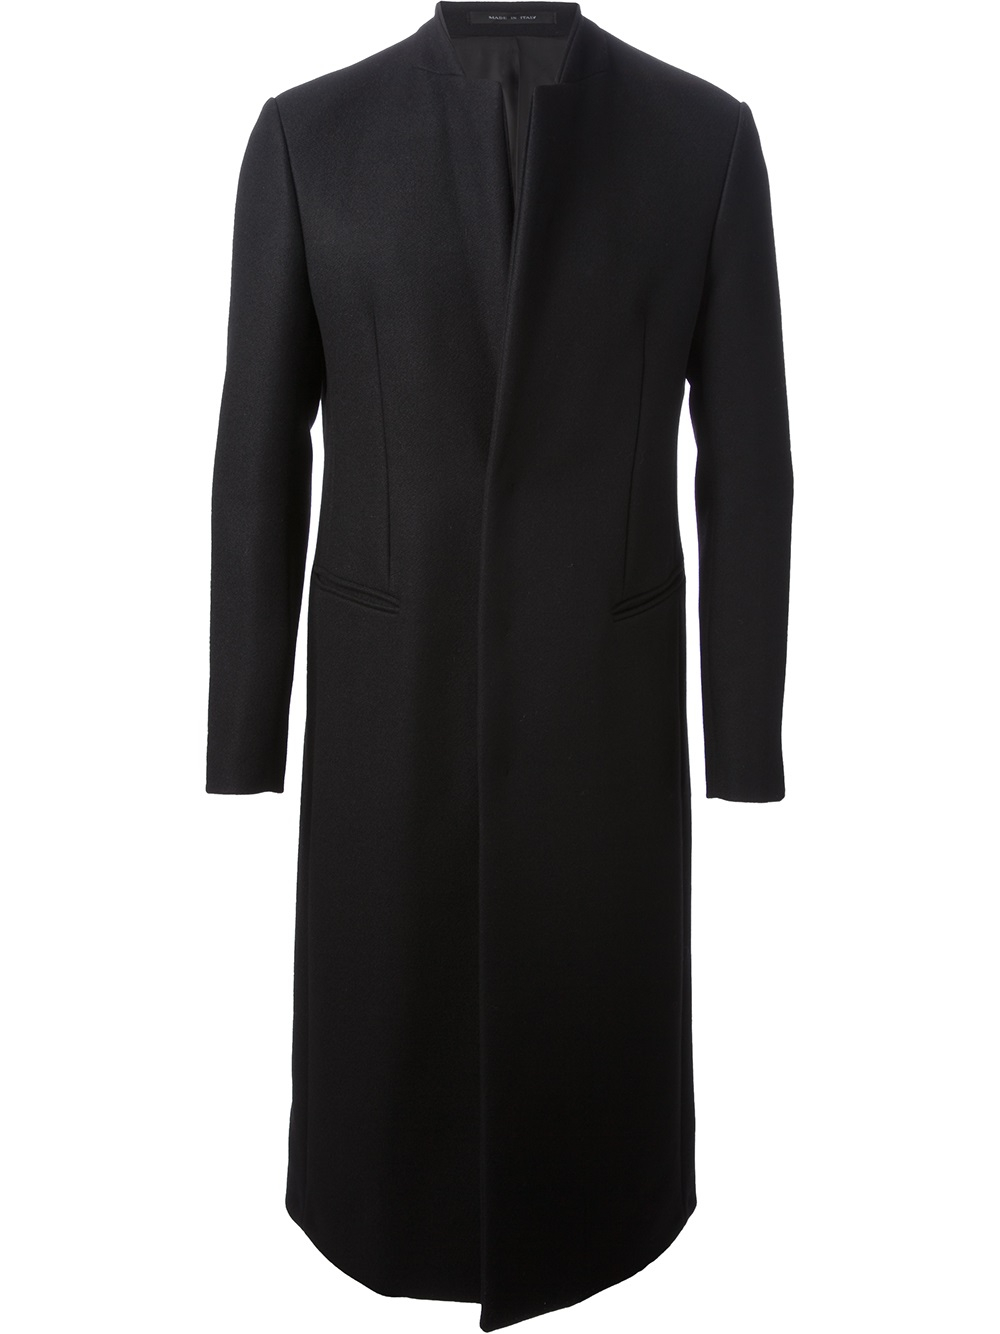 Emporio armani Formal Long Coat in Black for Men | Lyst